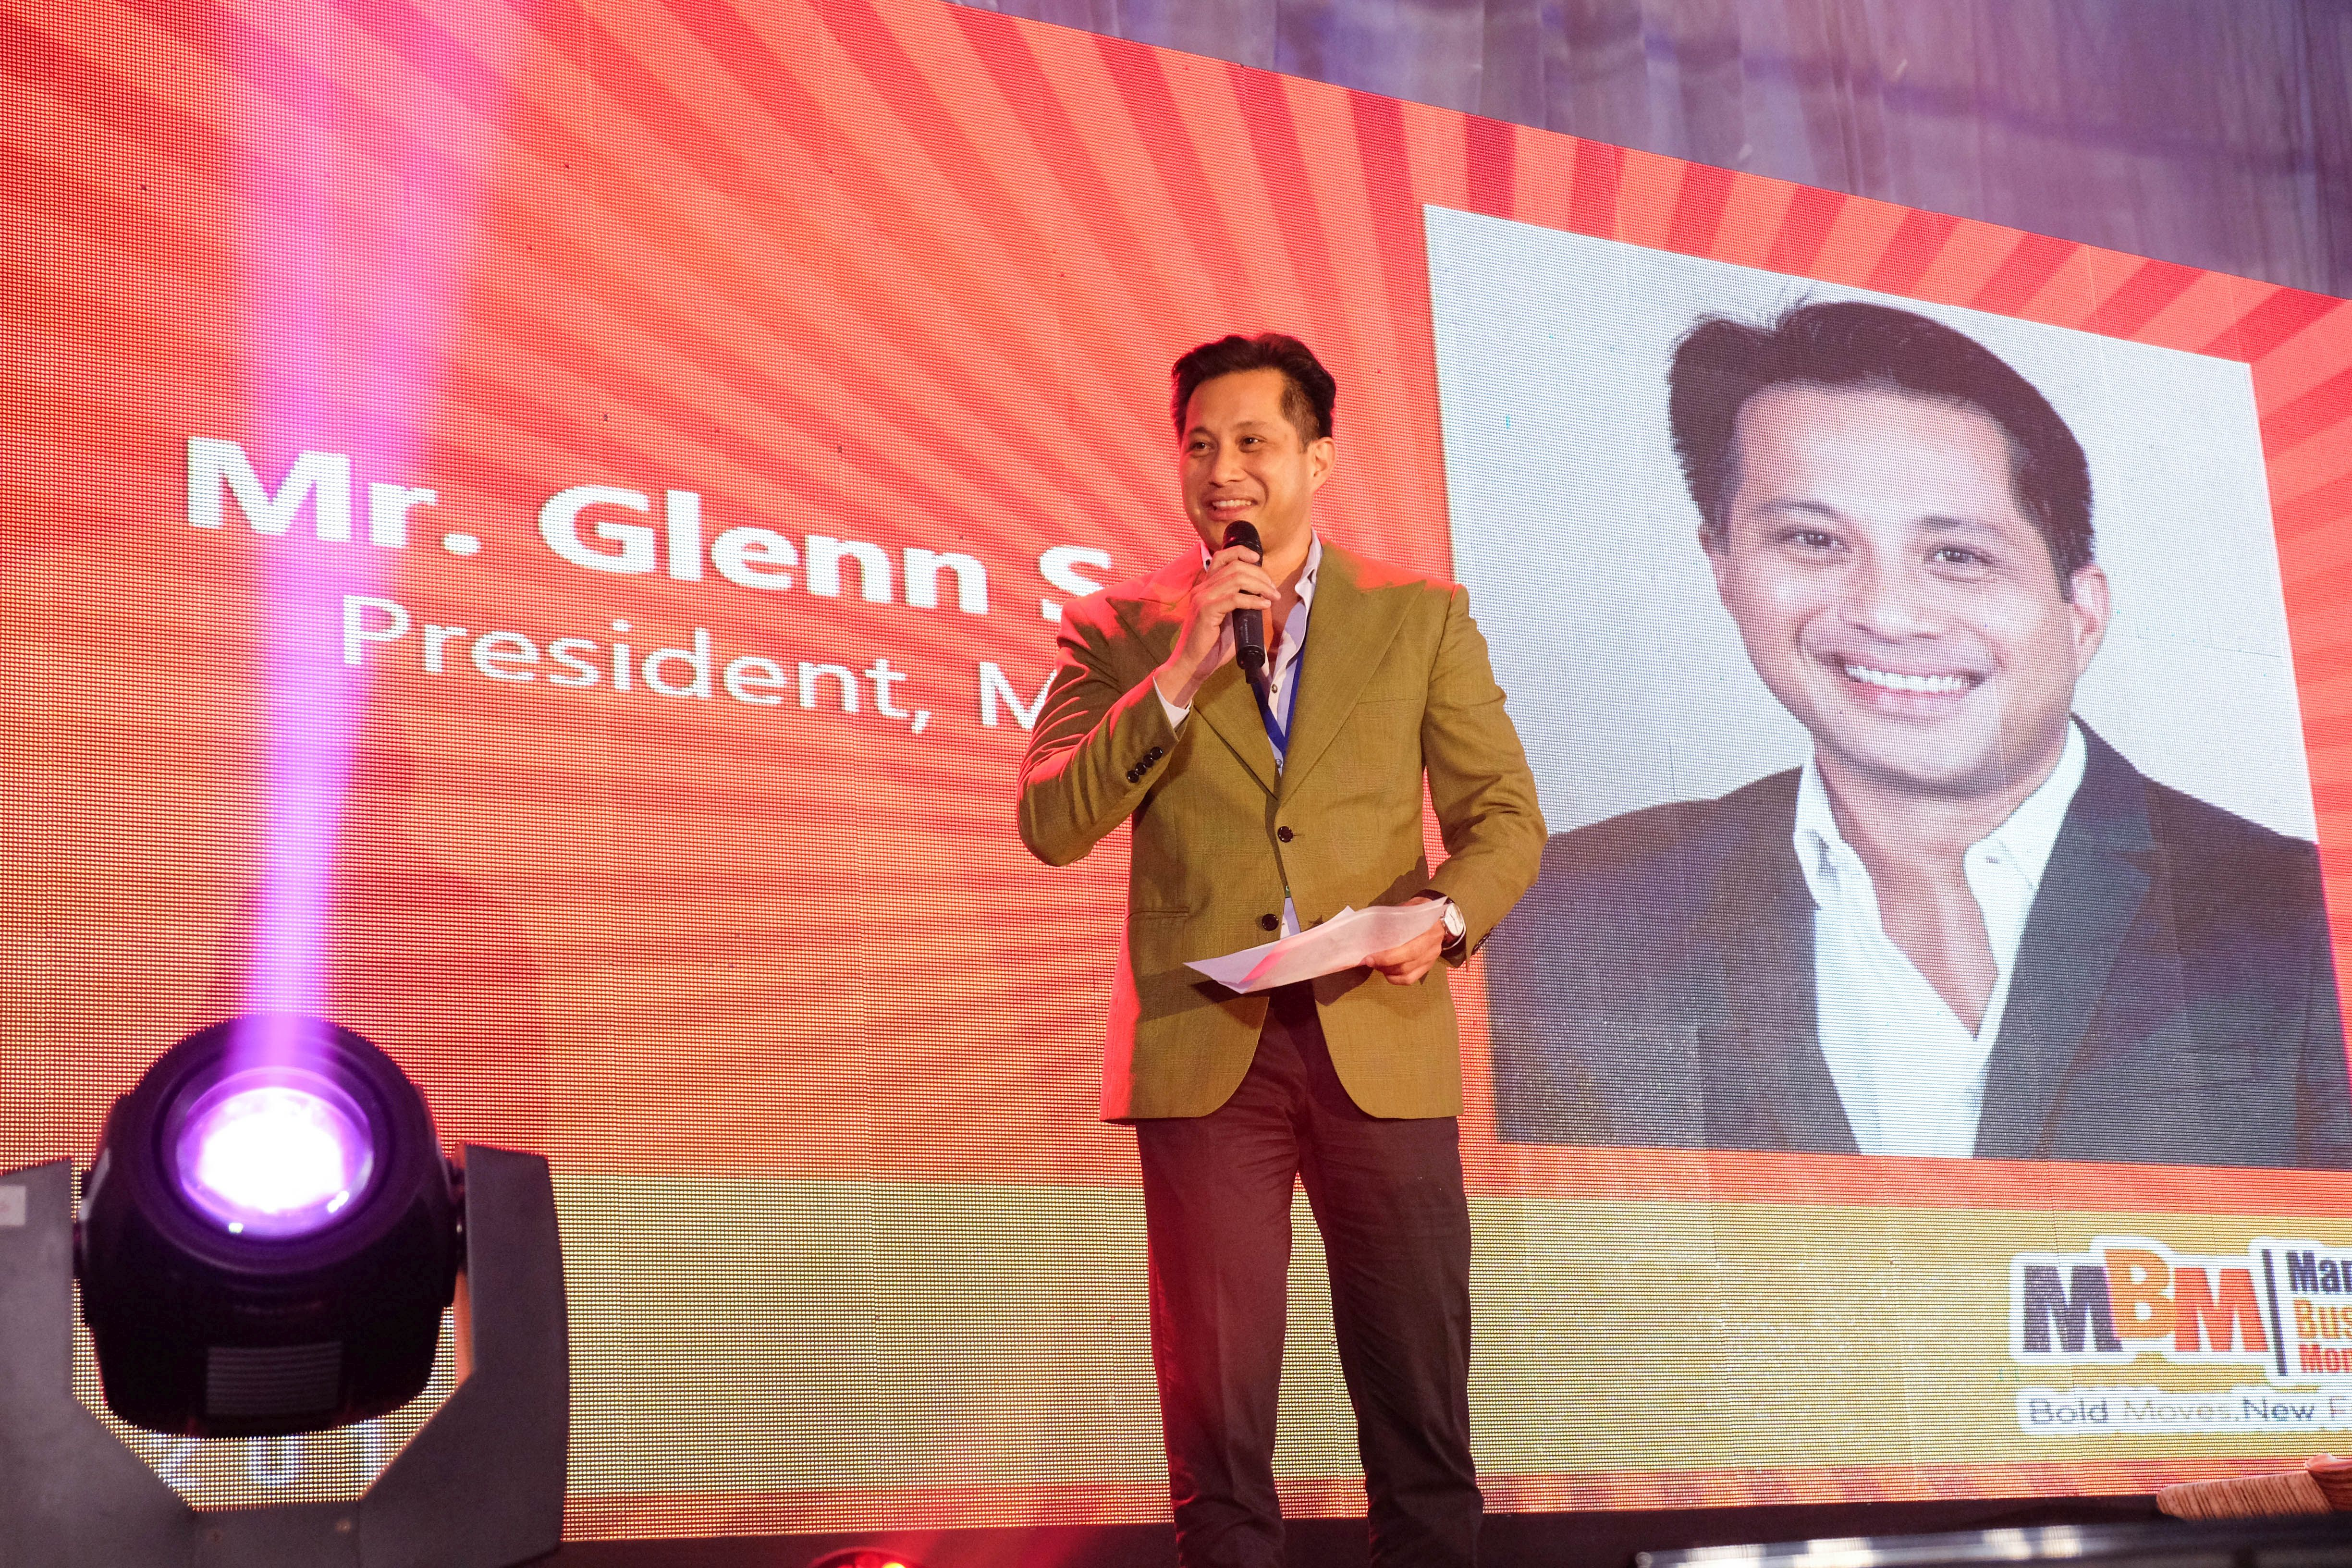 MCCI President, Mr. Glenn Anthony Soco